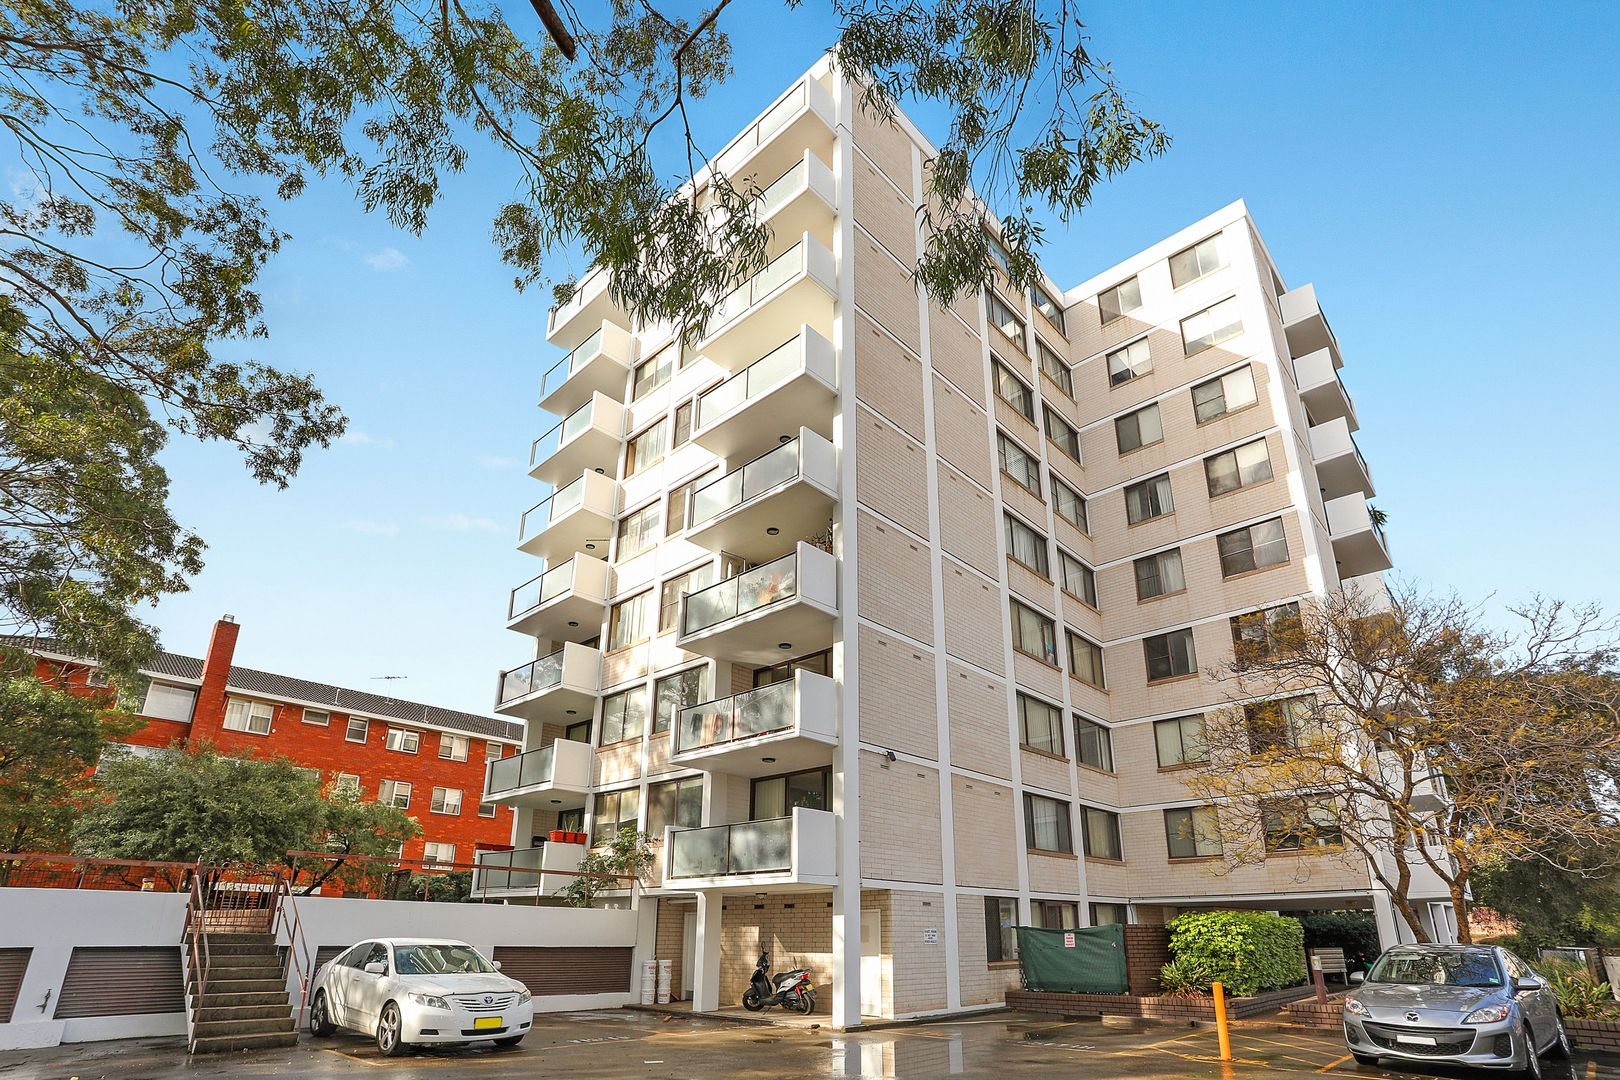 2/17 Everton  Road, Strathfield NSW 2135, Image 0